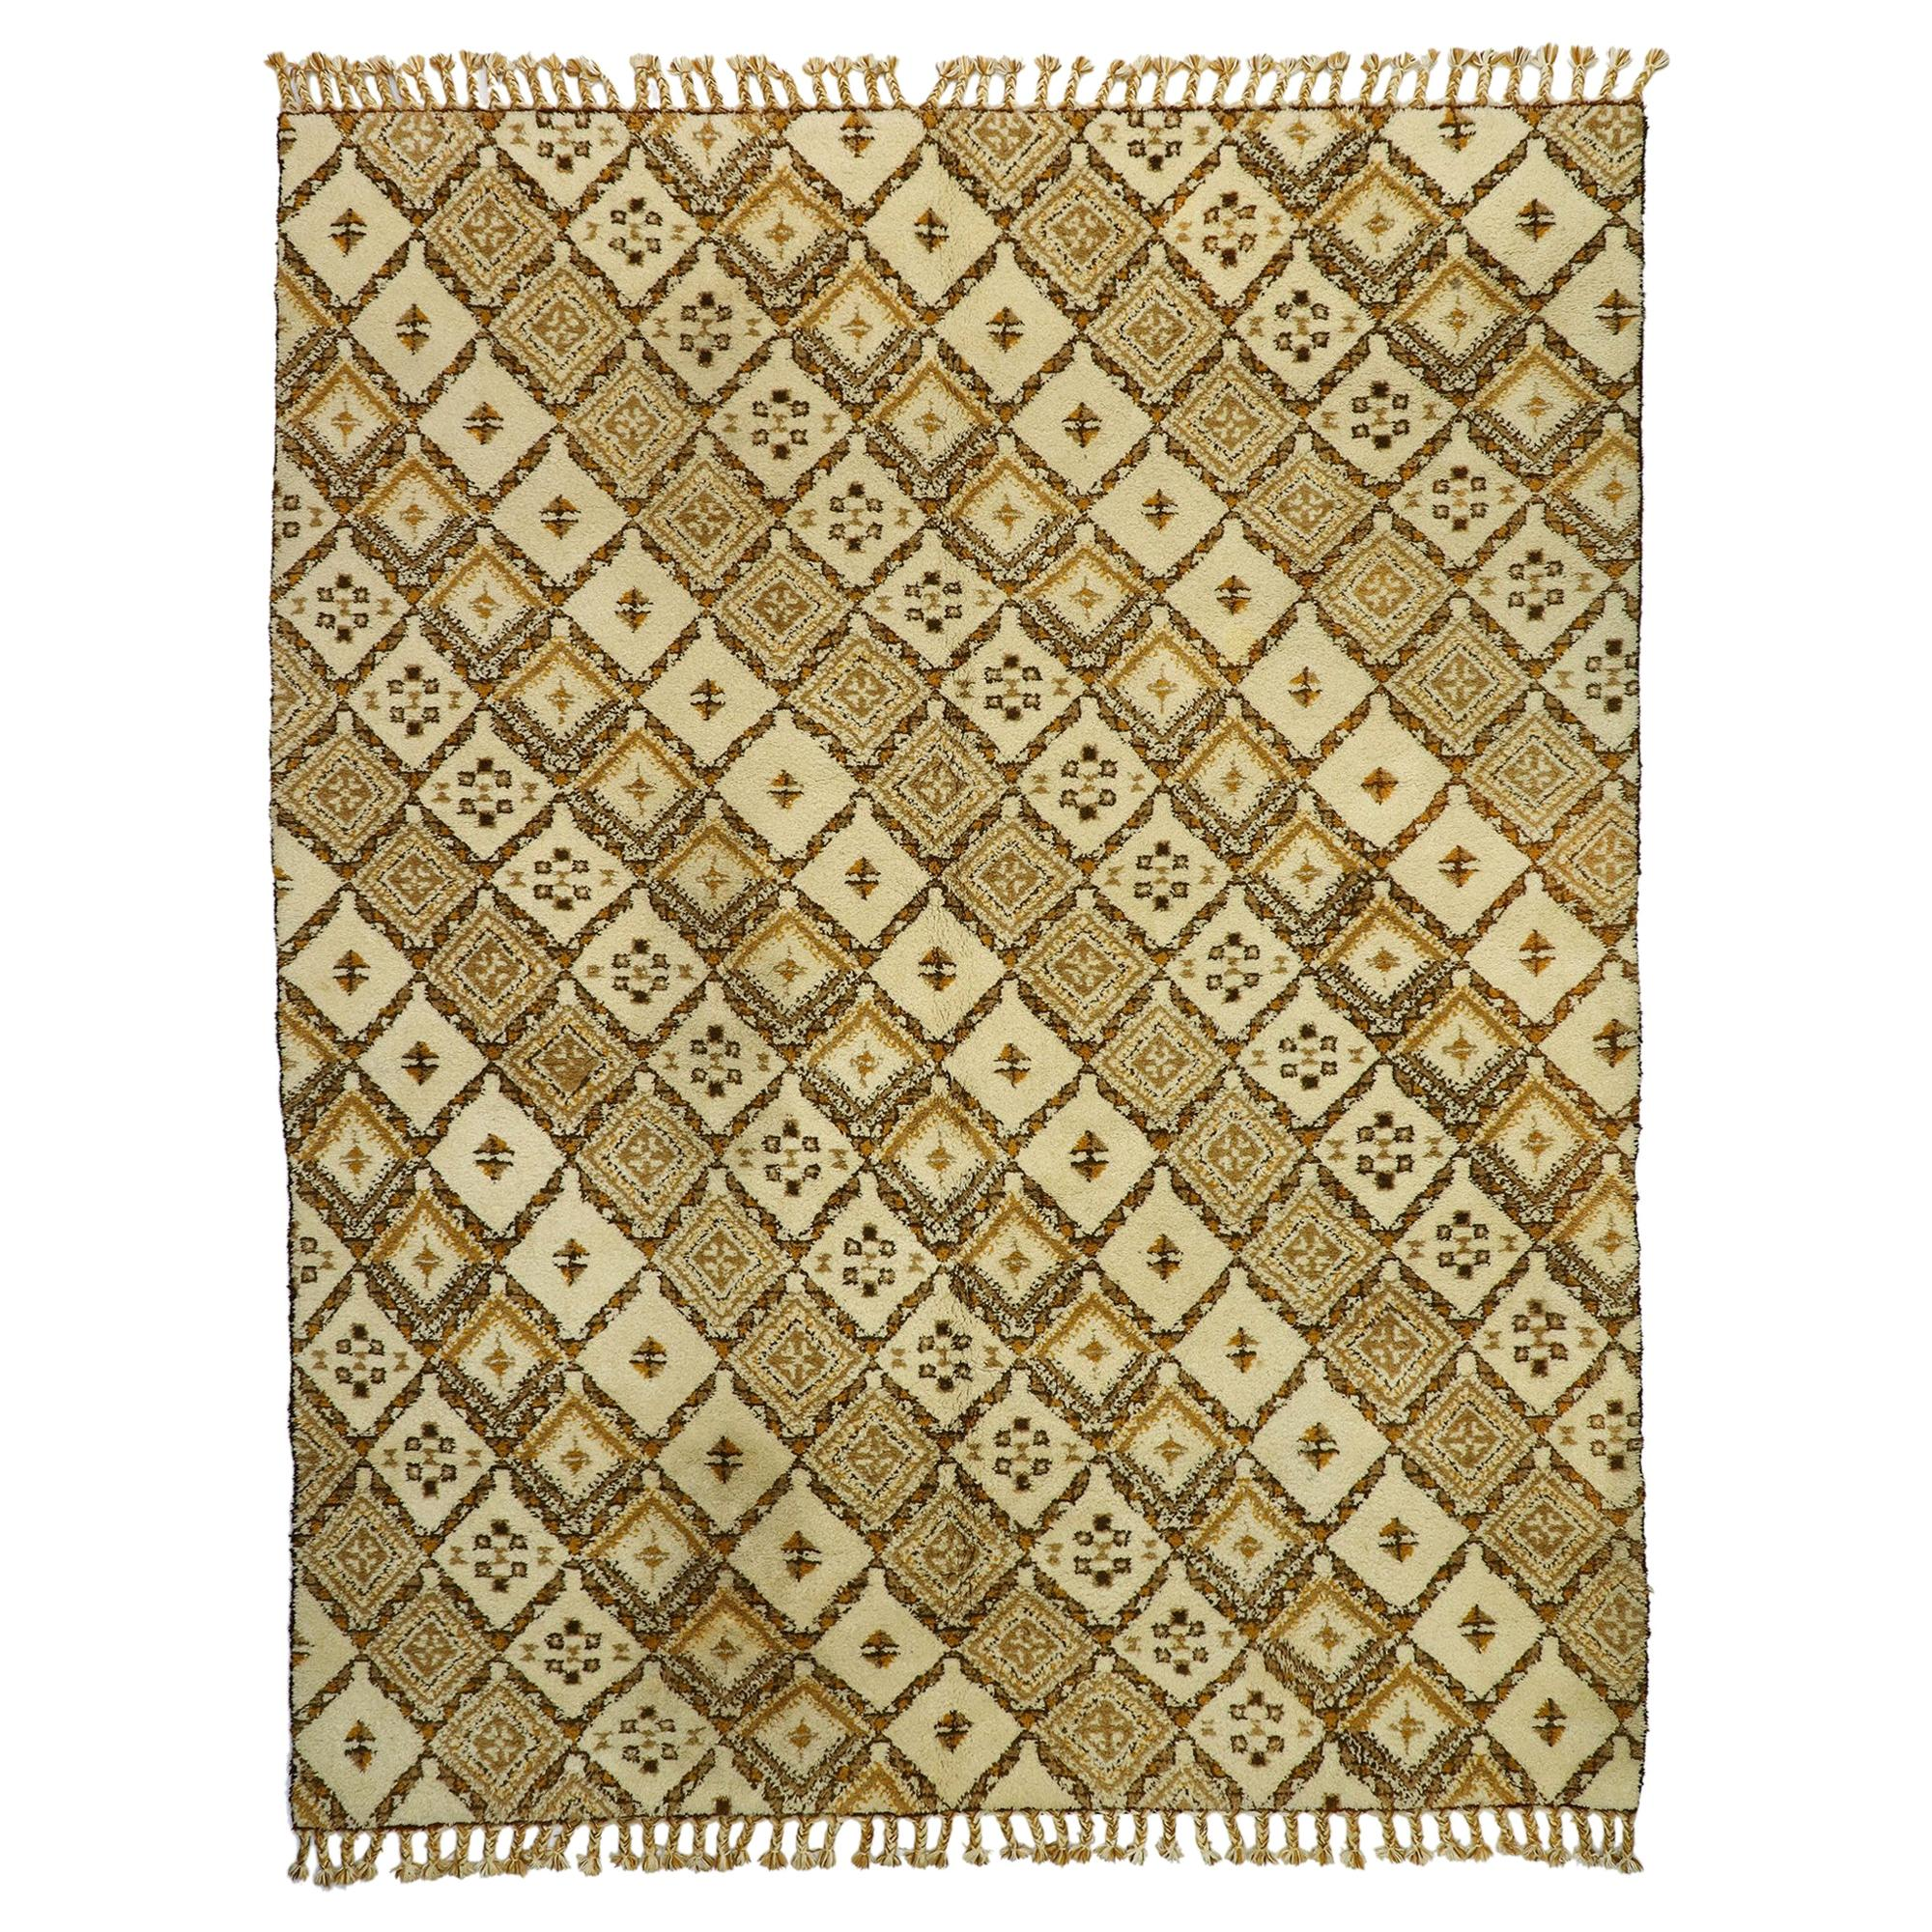 Vintage Rabat Moroccan Large Area Rug with MCM and Tribal Style